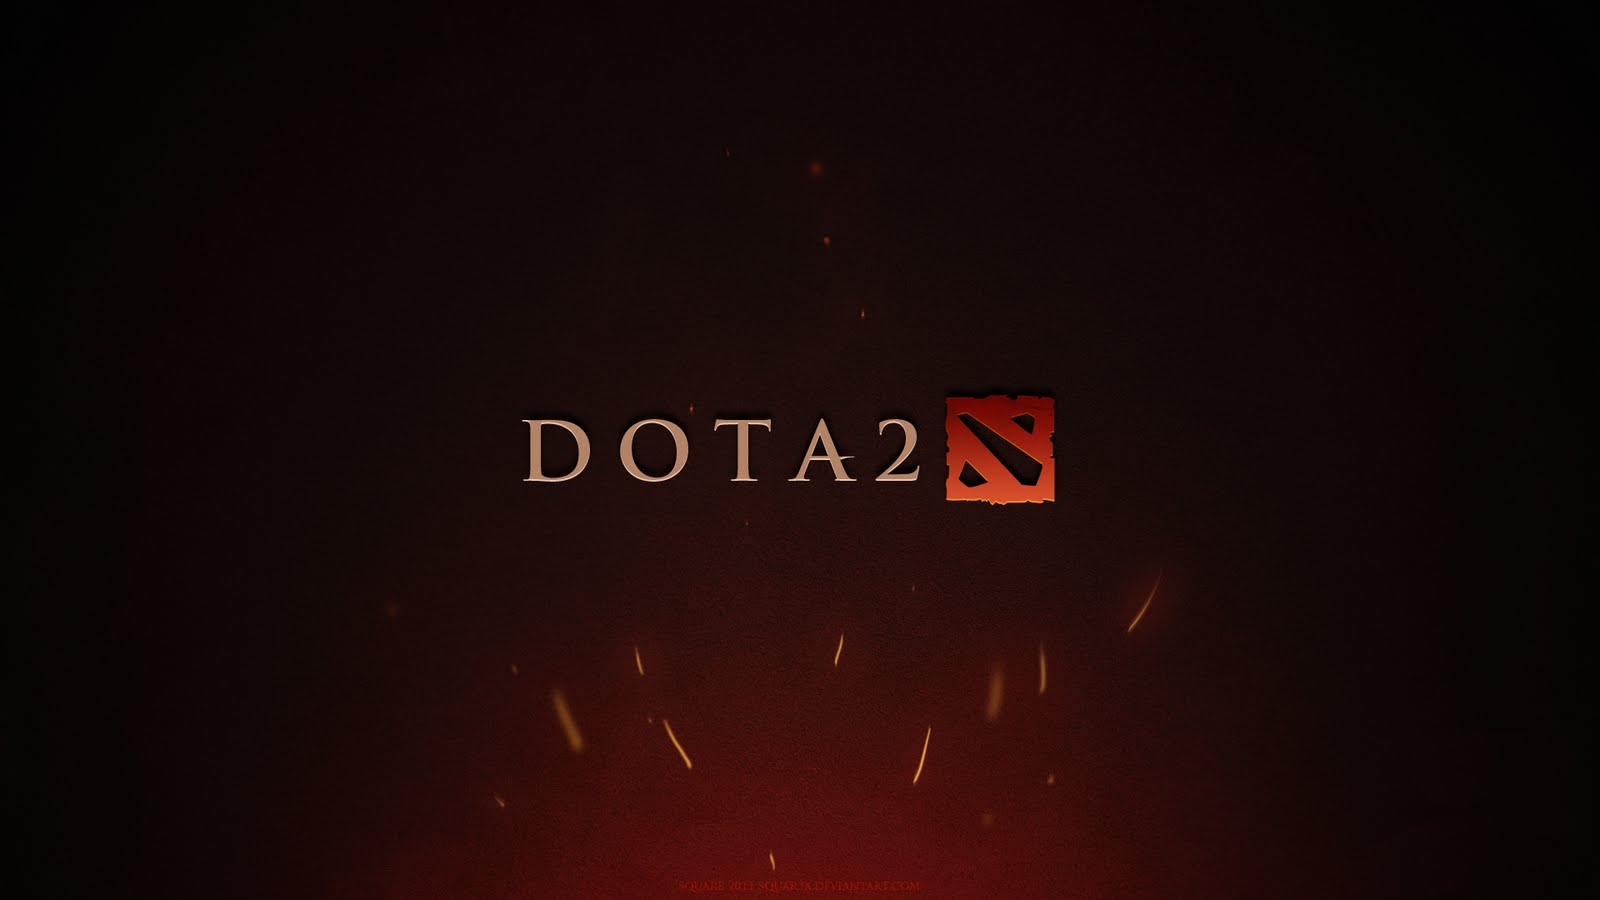 Dota 2 Wallpaper 15135 Hd Wallpapers in Games   Imagescicom 1600x900